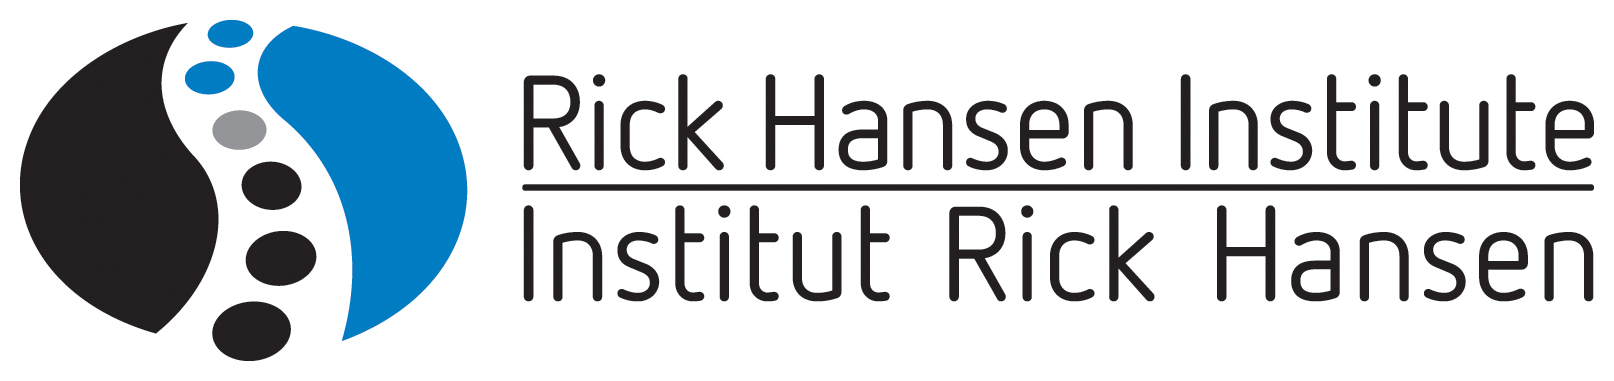 Rick Hanson Institute logo